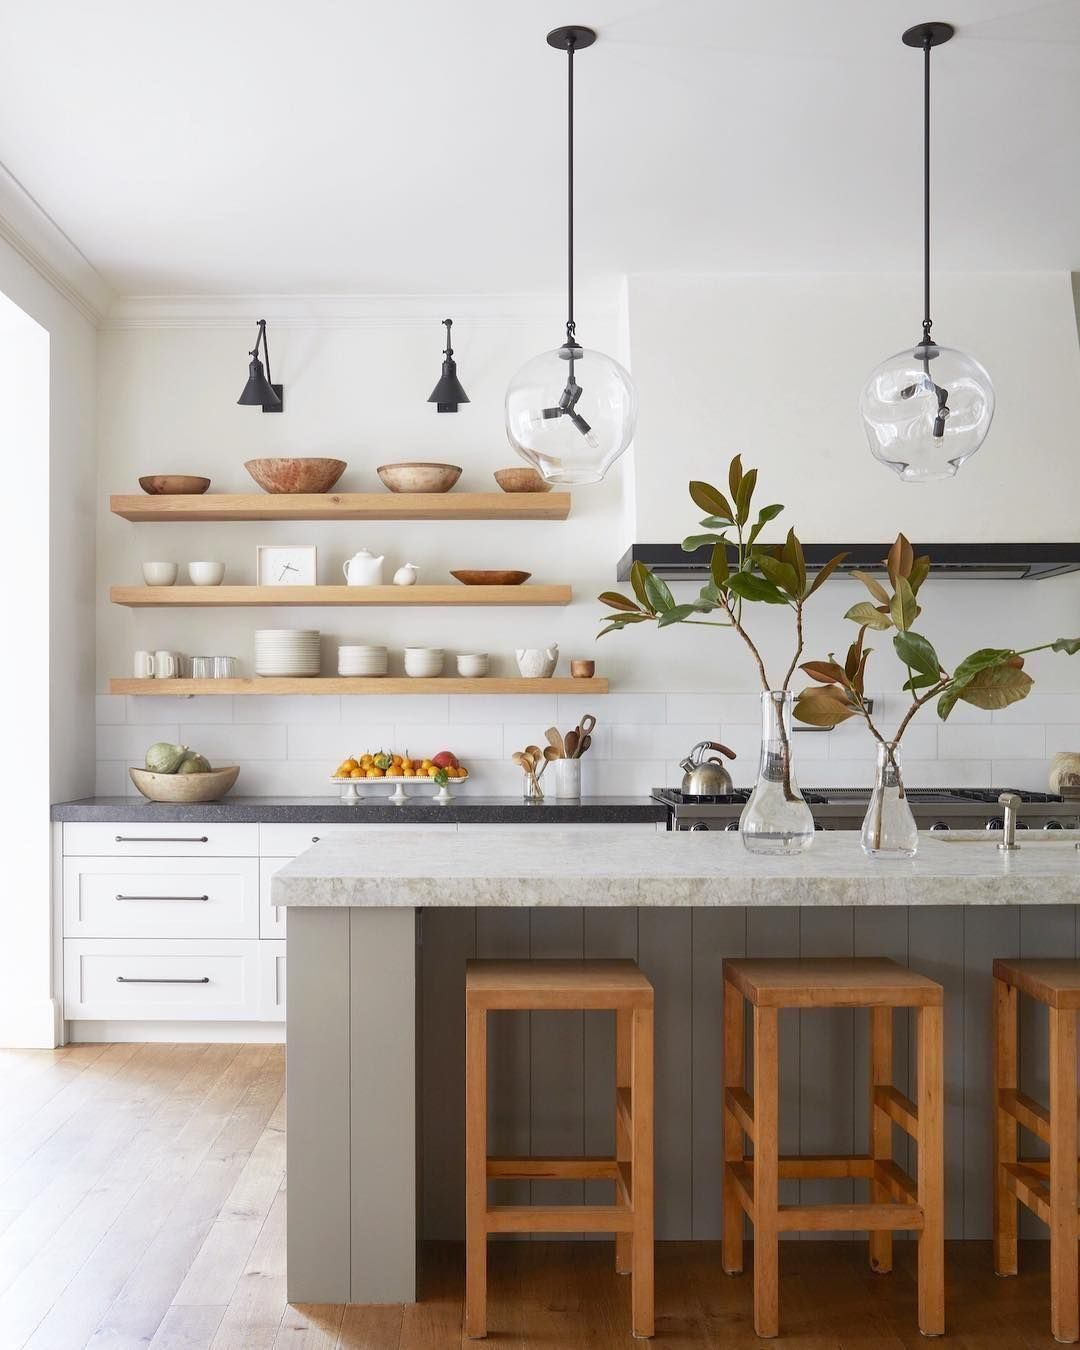 25 Eclectic Scandinavian Kitchen Designs (Let's Bring The Charm!) - 5F8B36802Acb6E7840D92329E02F97A5